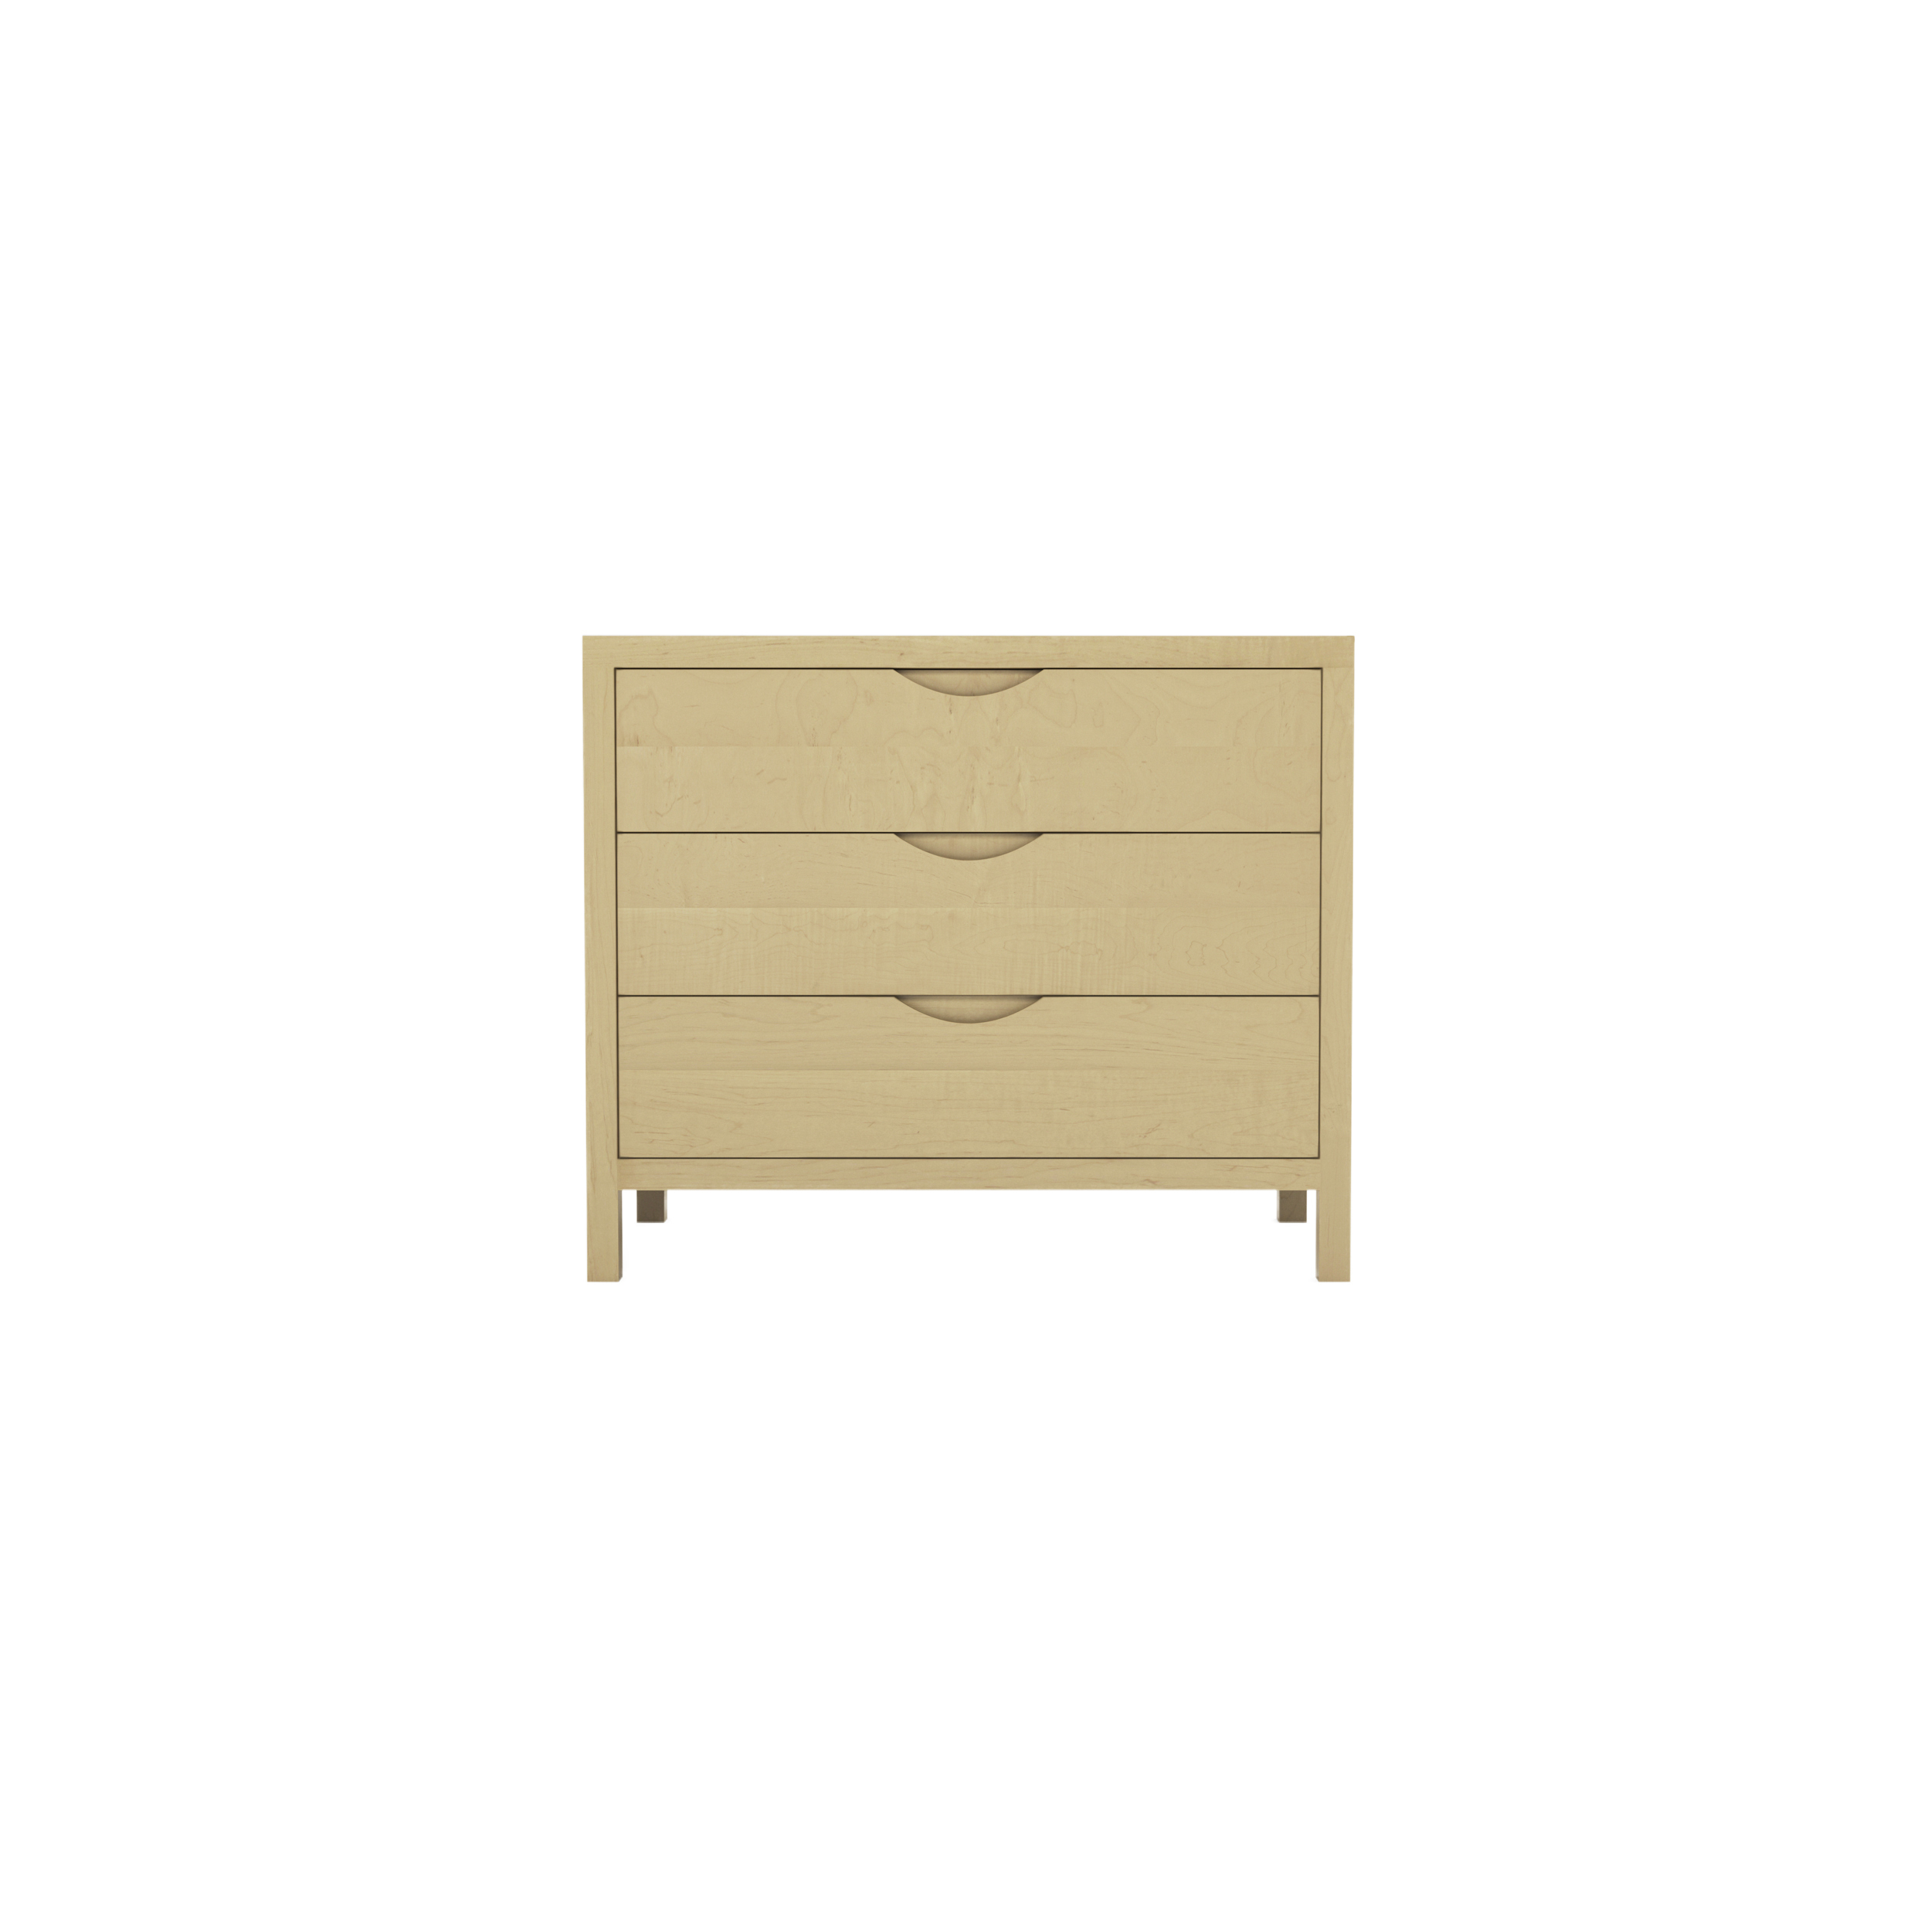 Series 353 Dresser With Three Drawers At 36″ In Width